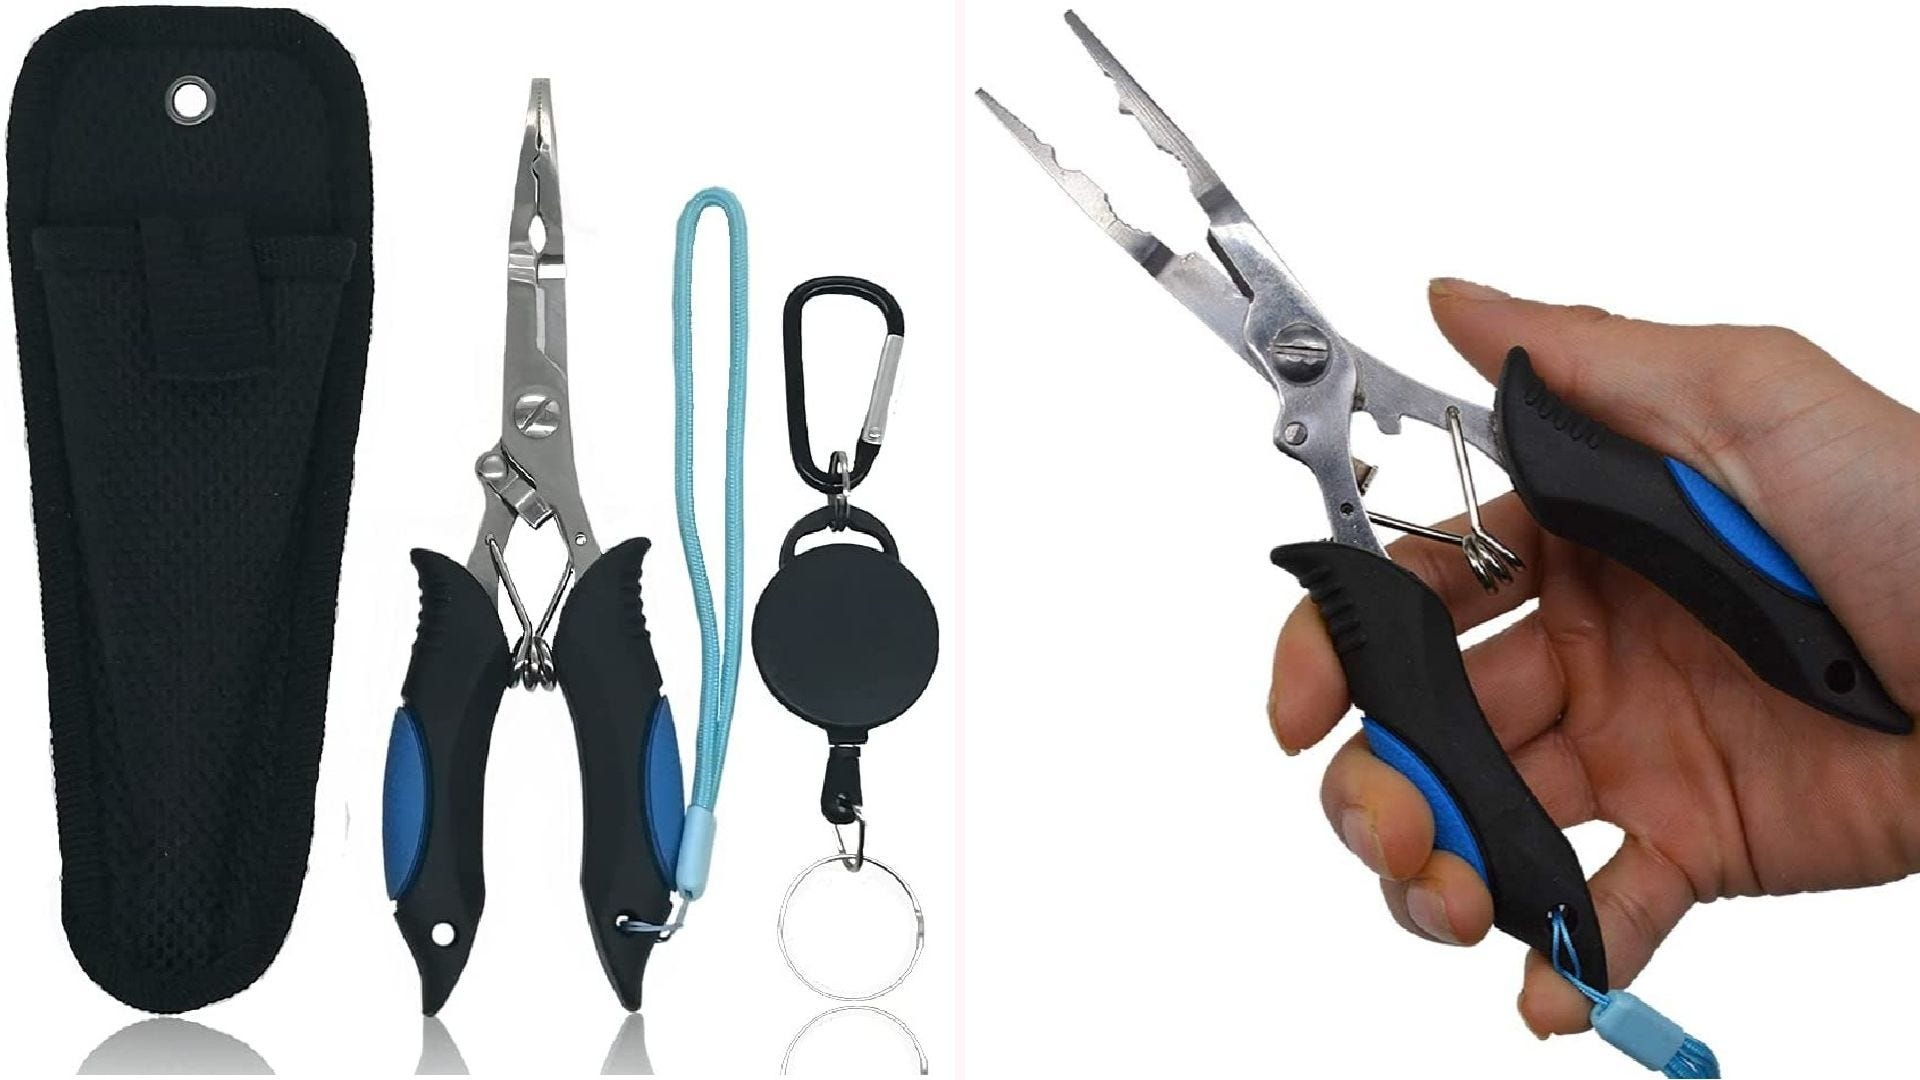 On the left, a sheath, needle-nose pliers, and lanyards on display. On the right, a man holding needle-nose pliers in his hand.